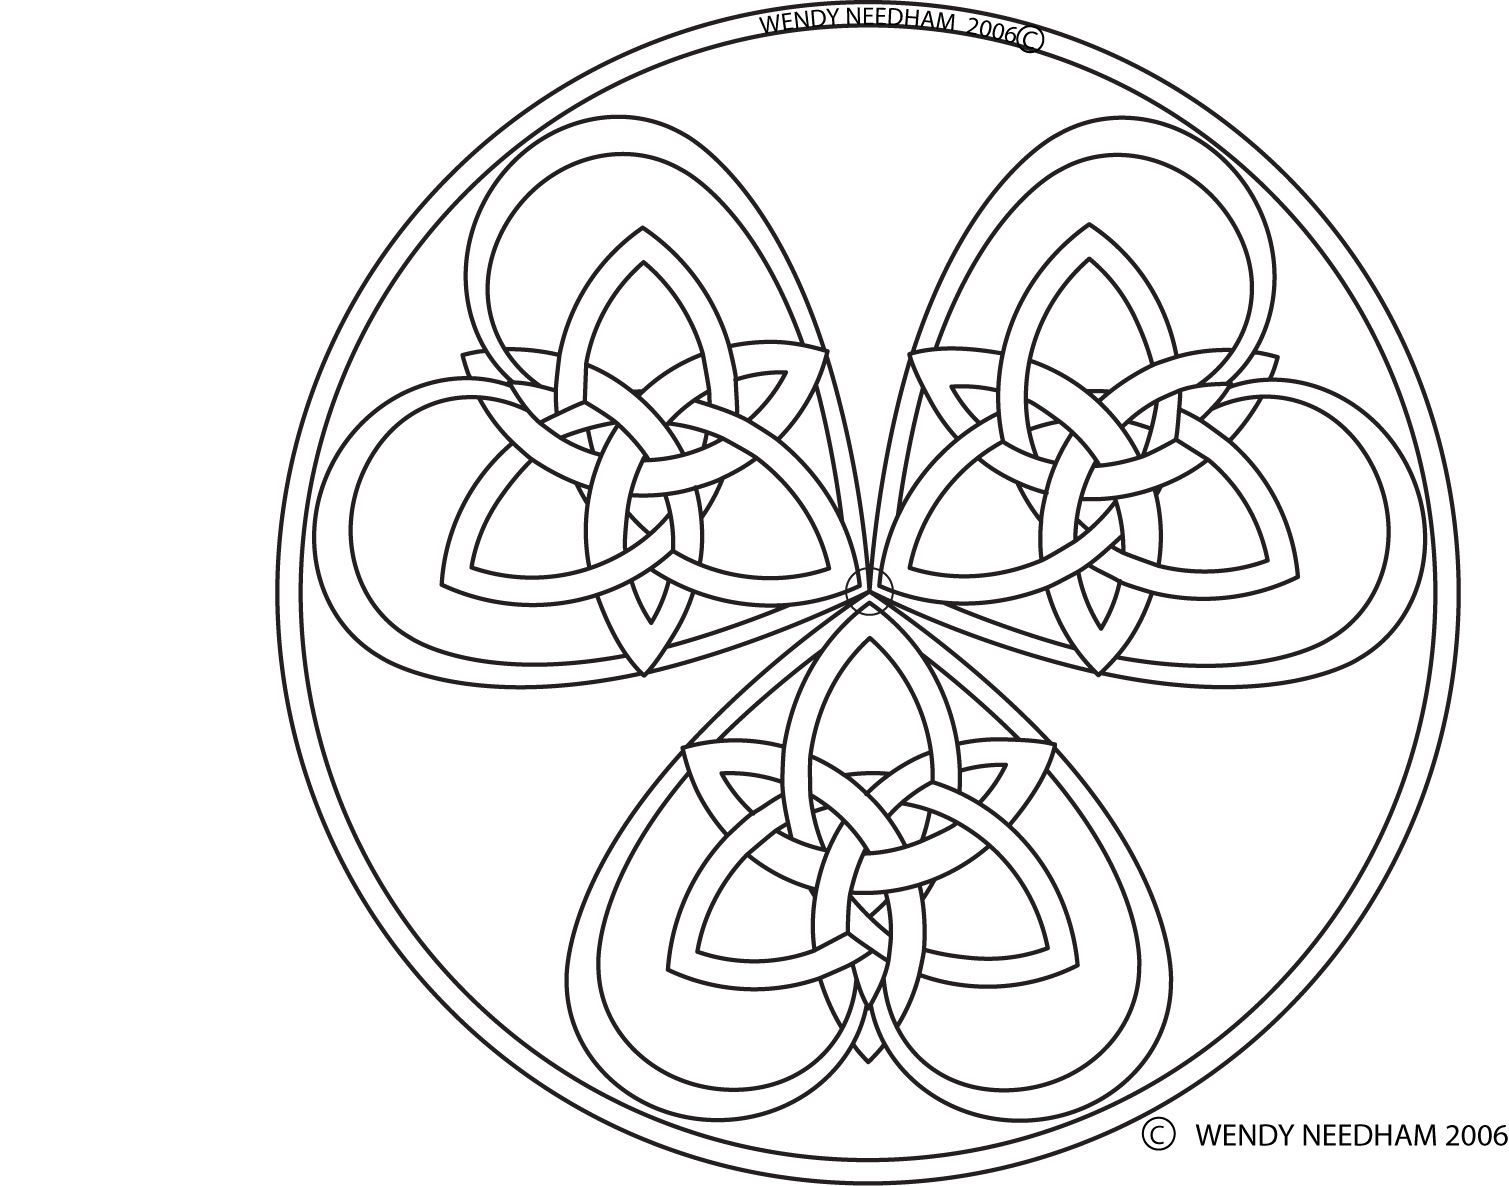 knotwork in the hearts - favorite so far | Tattoo | Pinterest ...